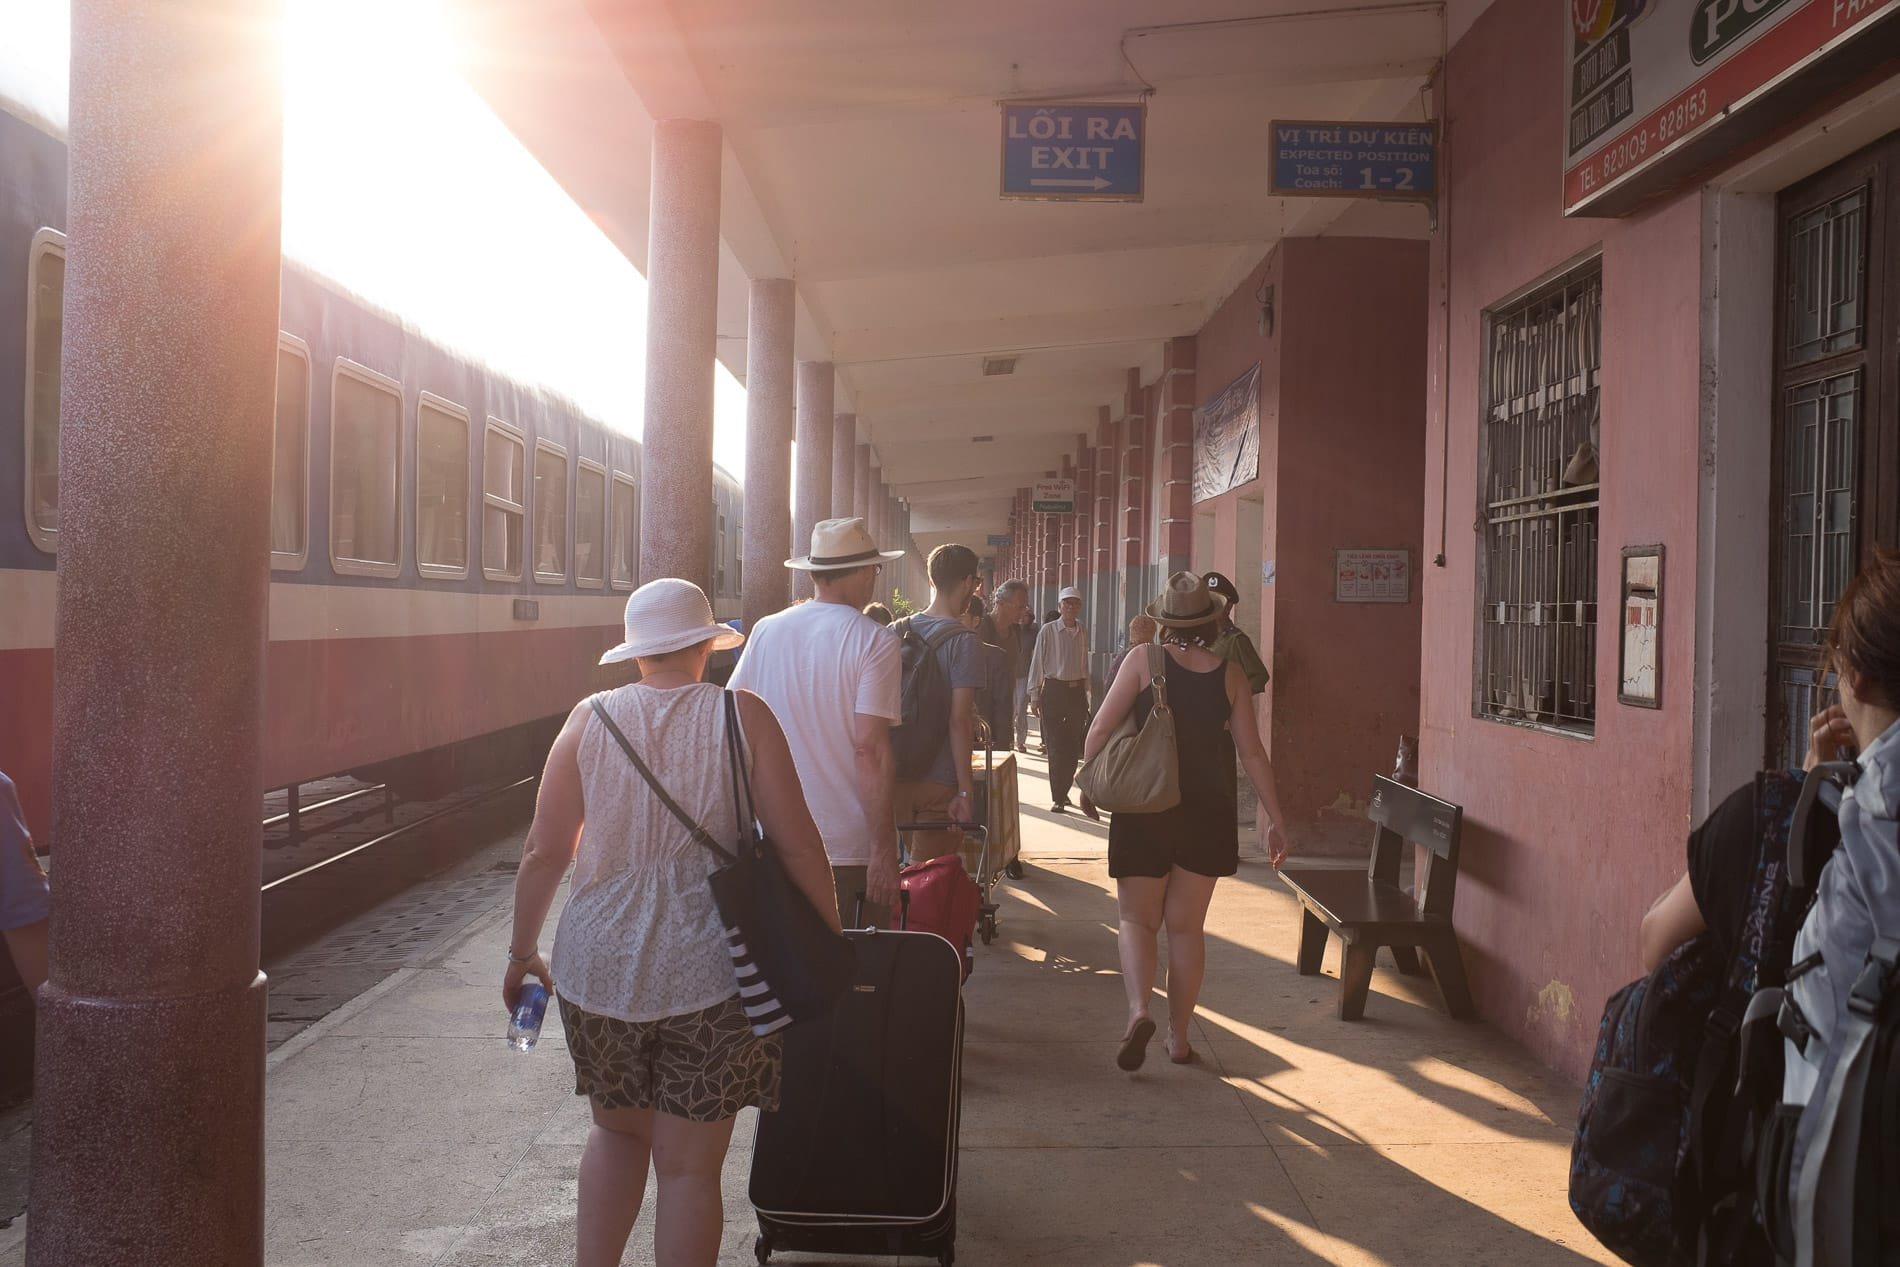 travelers pack the train station